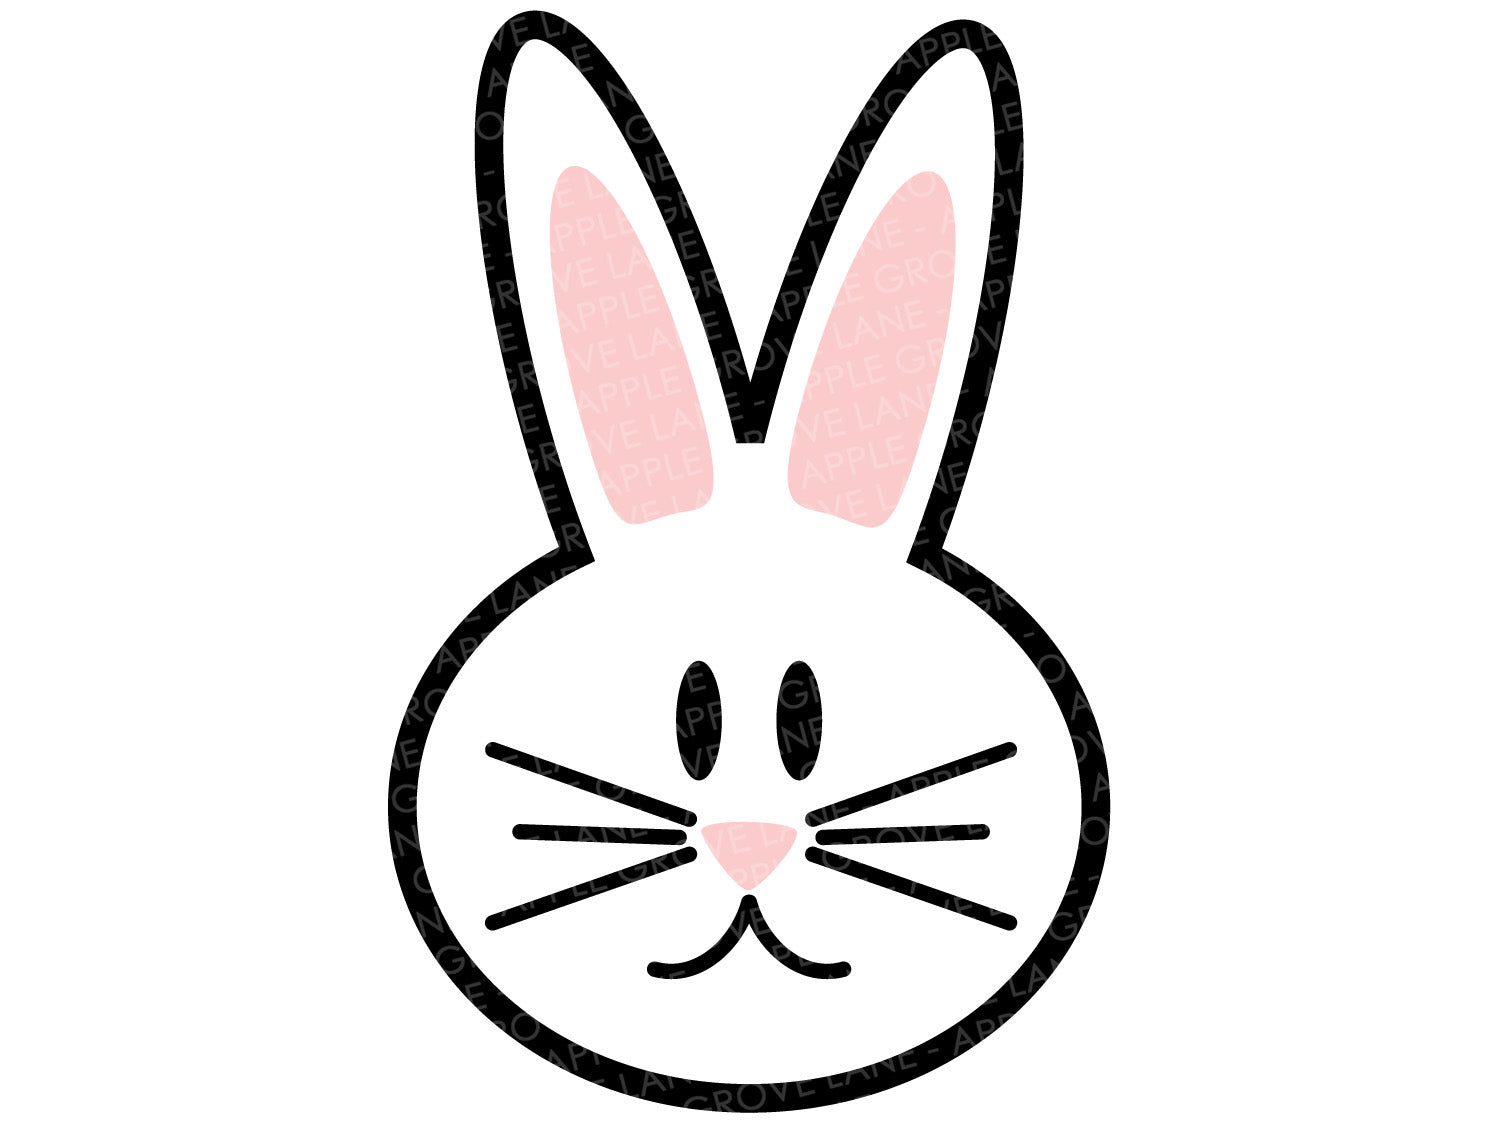 Easter Bunny Svg - Easter Svg - Bunny Svg - Rabbit Svg - Bunny Head Svg - Bunny Outline Svg - Rabbit Face Svg - Spring Svg - Svg Eps Dxf Png